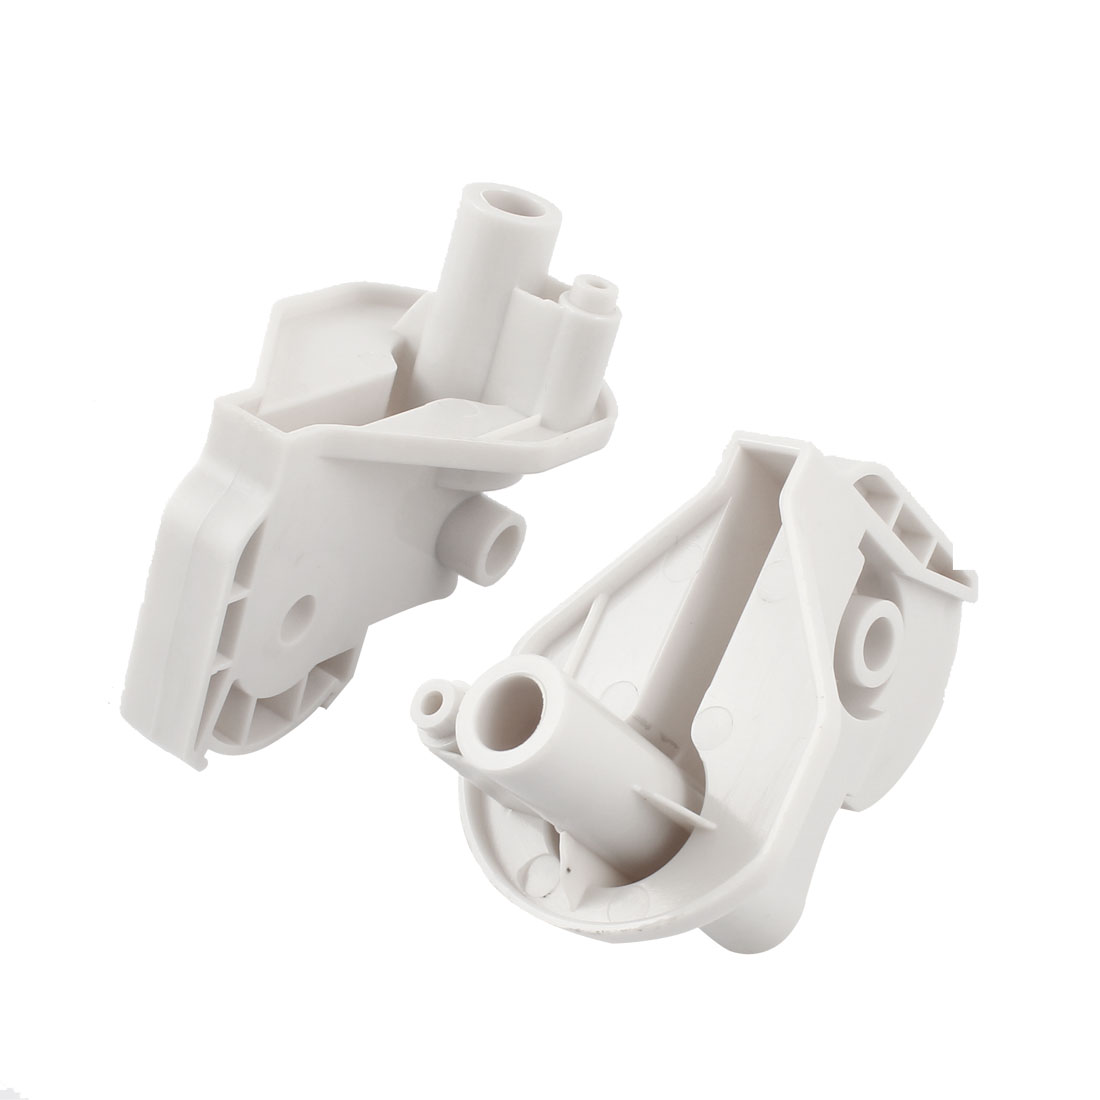 2PCS White Plastic Electric Fan Elbow Connectors 78mm x 52mm x 85mm